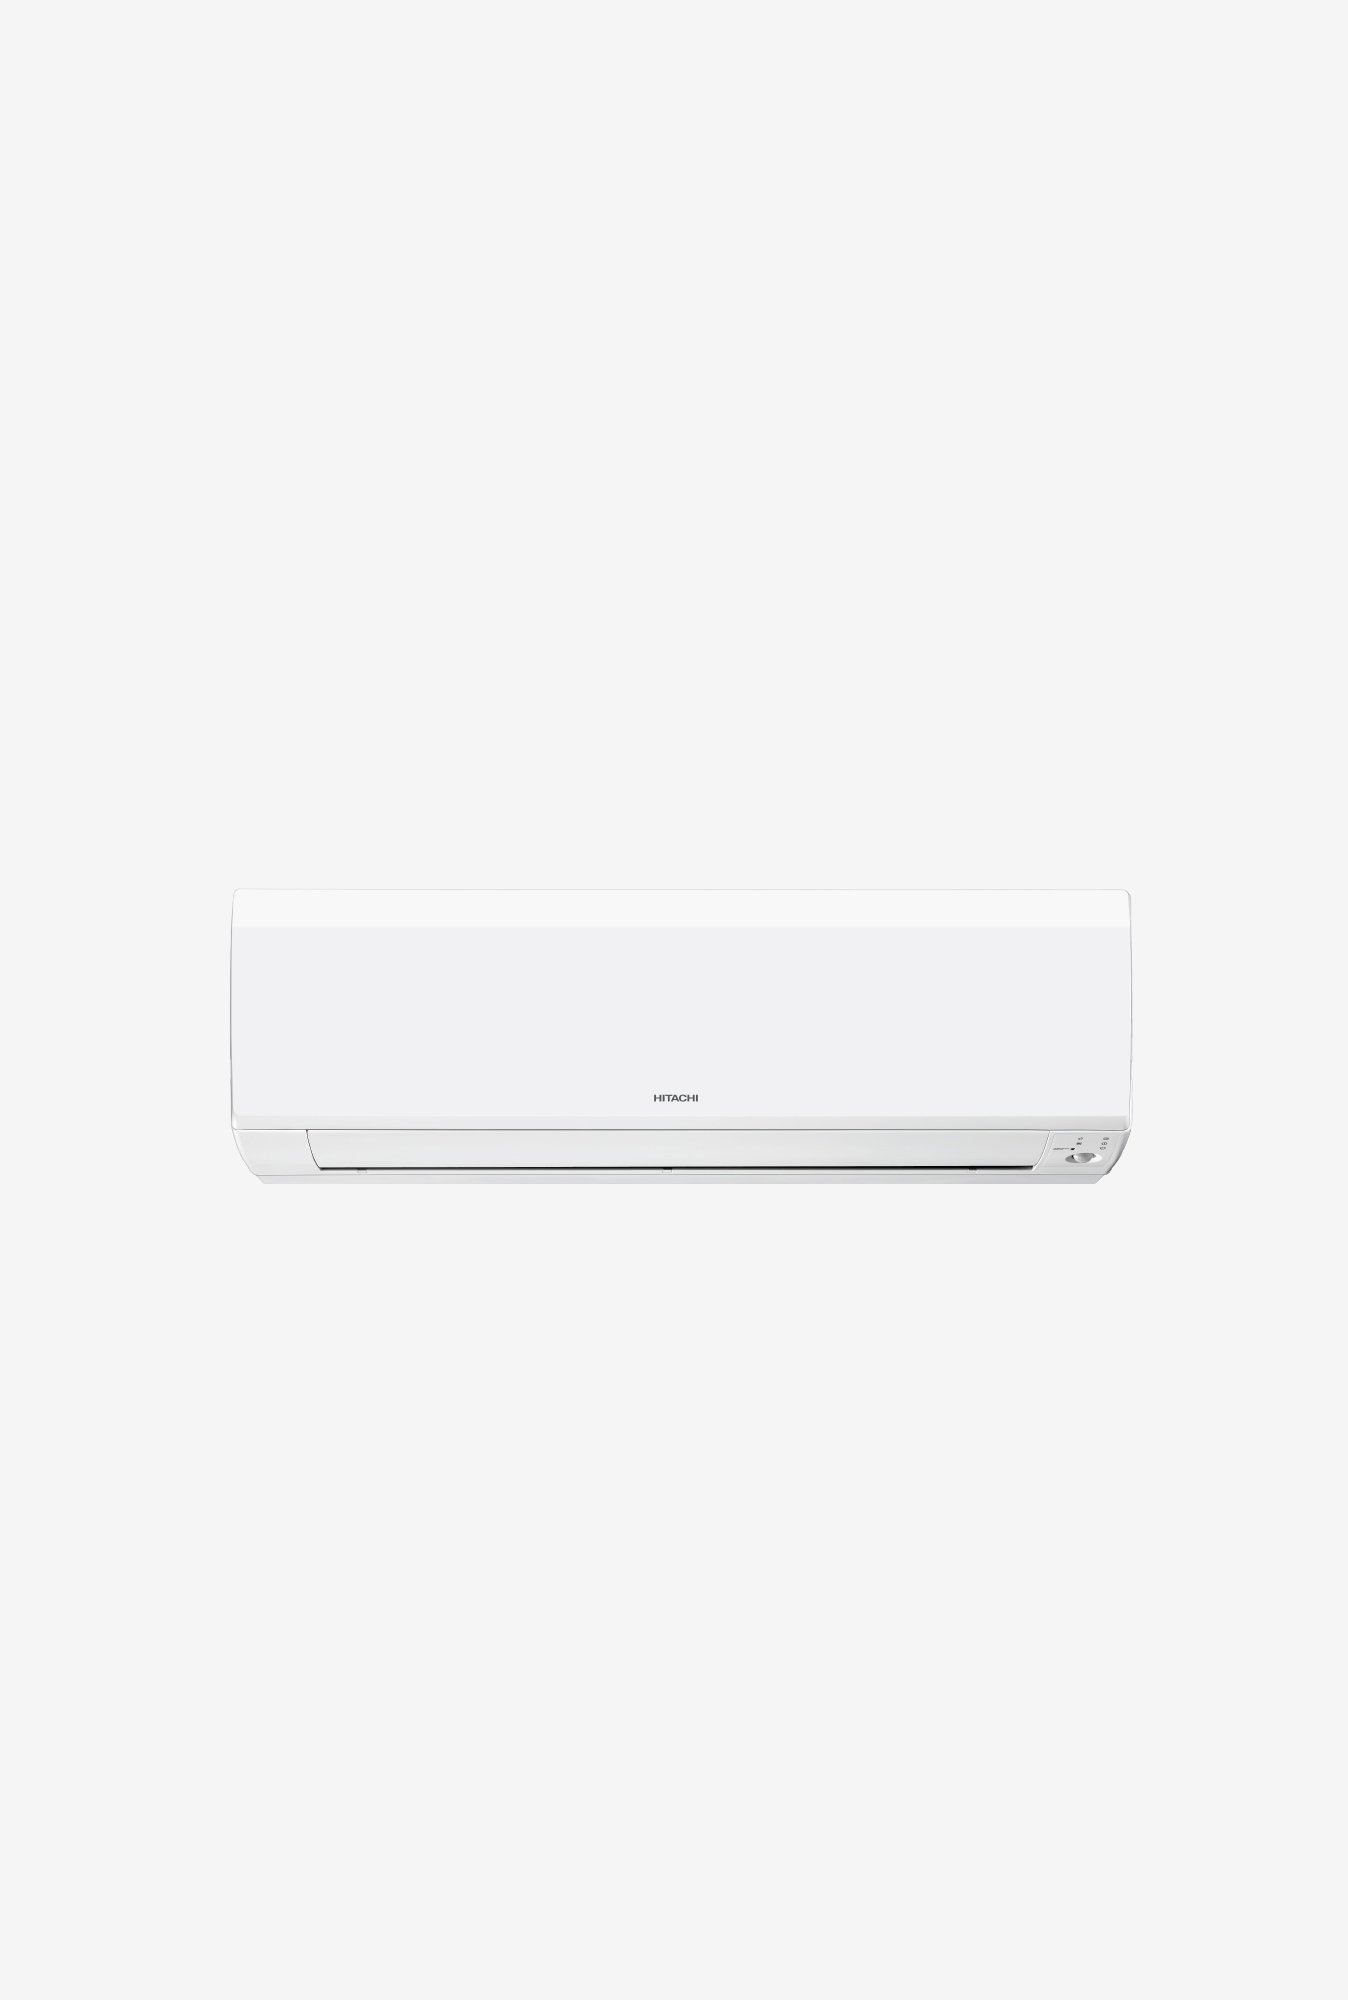 Hitachi Kashikoi 3200i 1.5 Ton 3S Inverter Split AC Copper